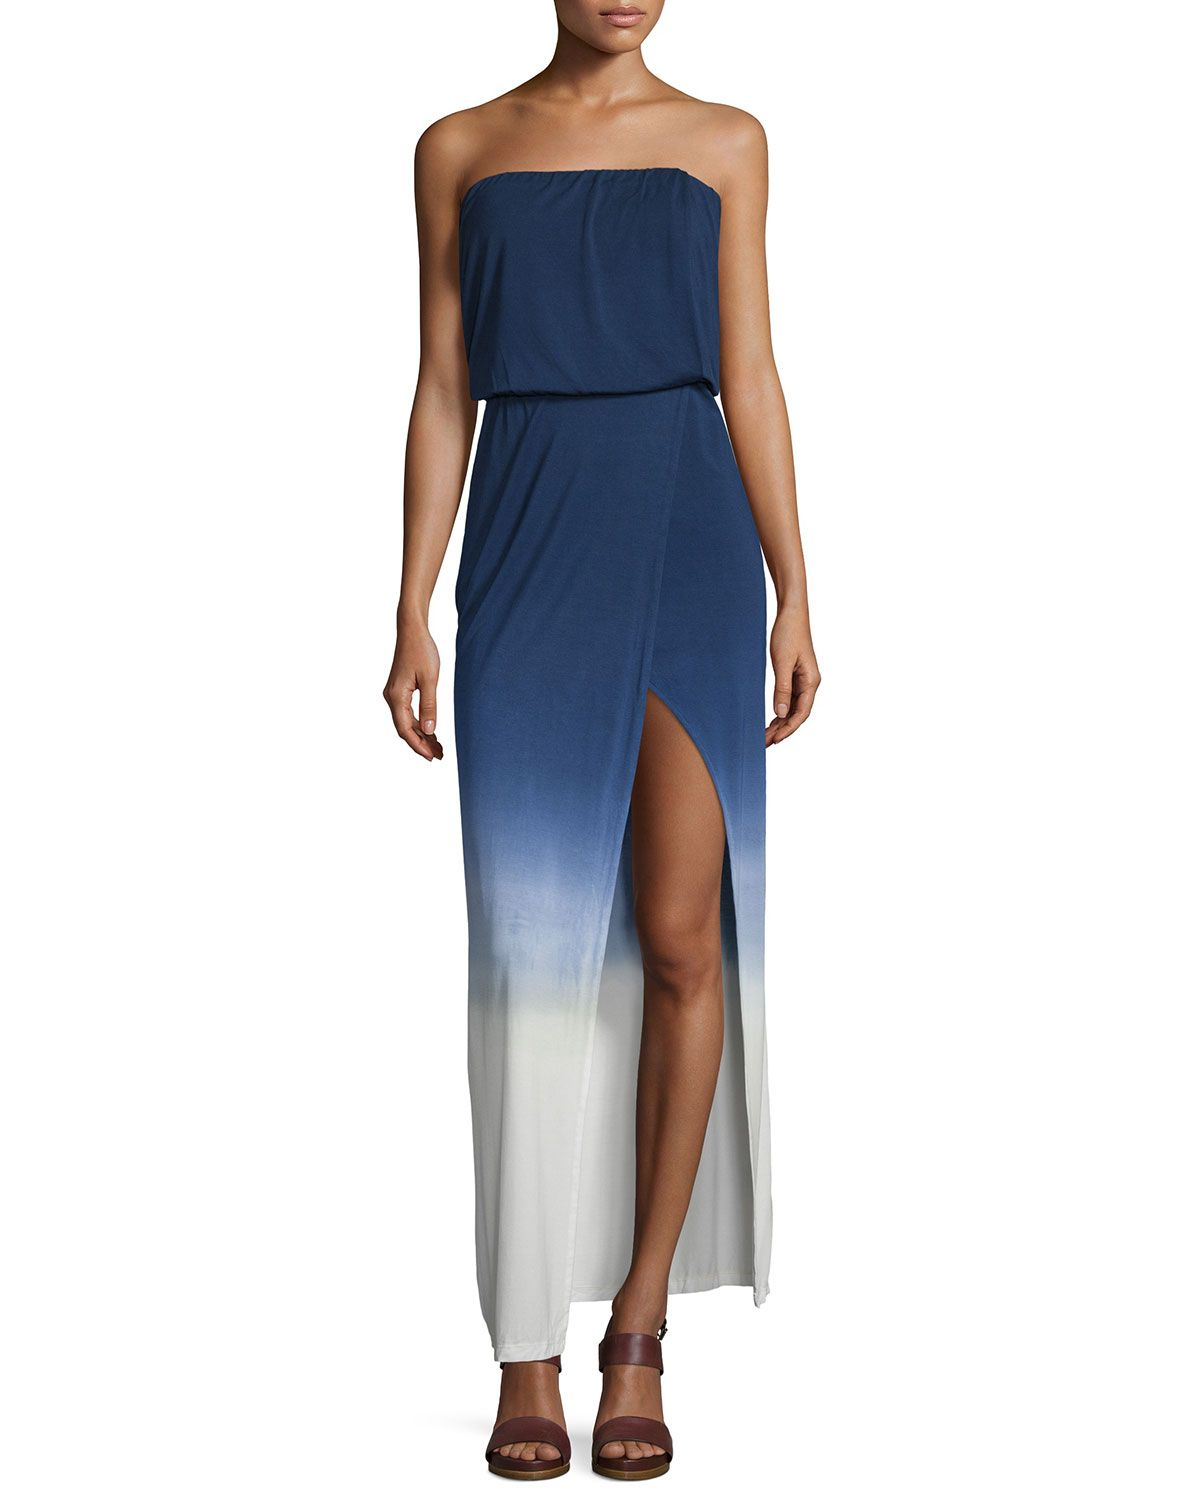 Amari Strapless Maxi Dress, Navy Ombre - Young Fabulous and Broke